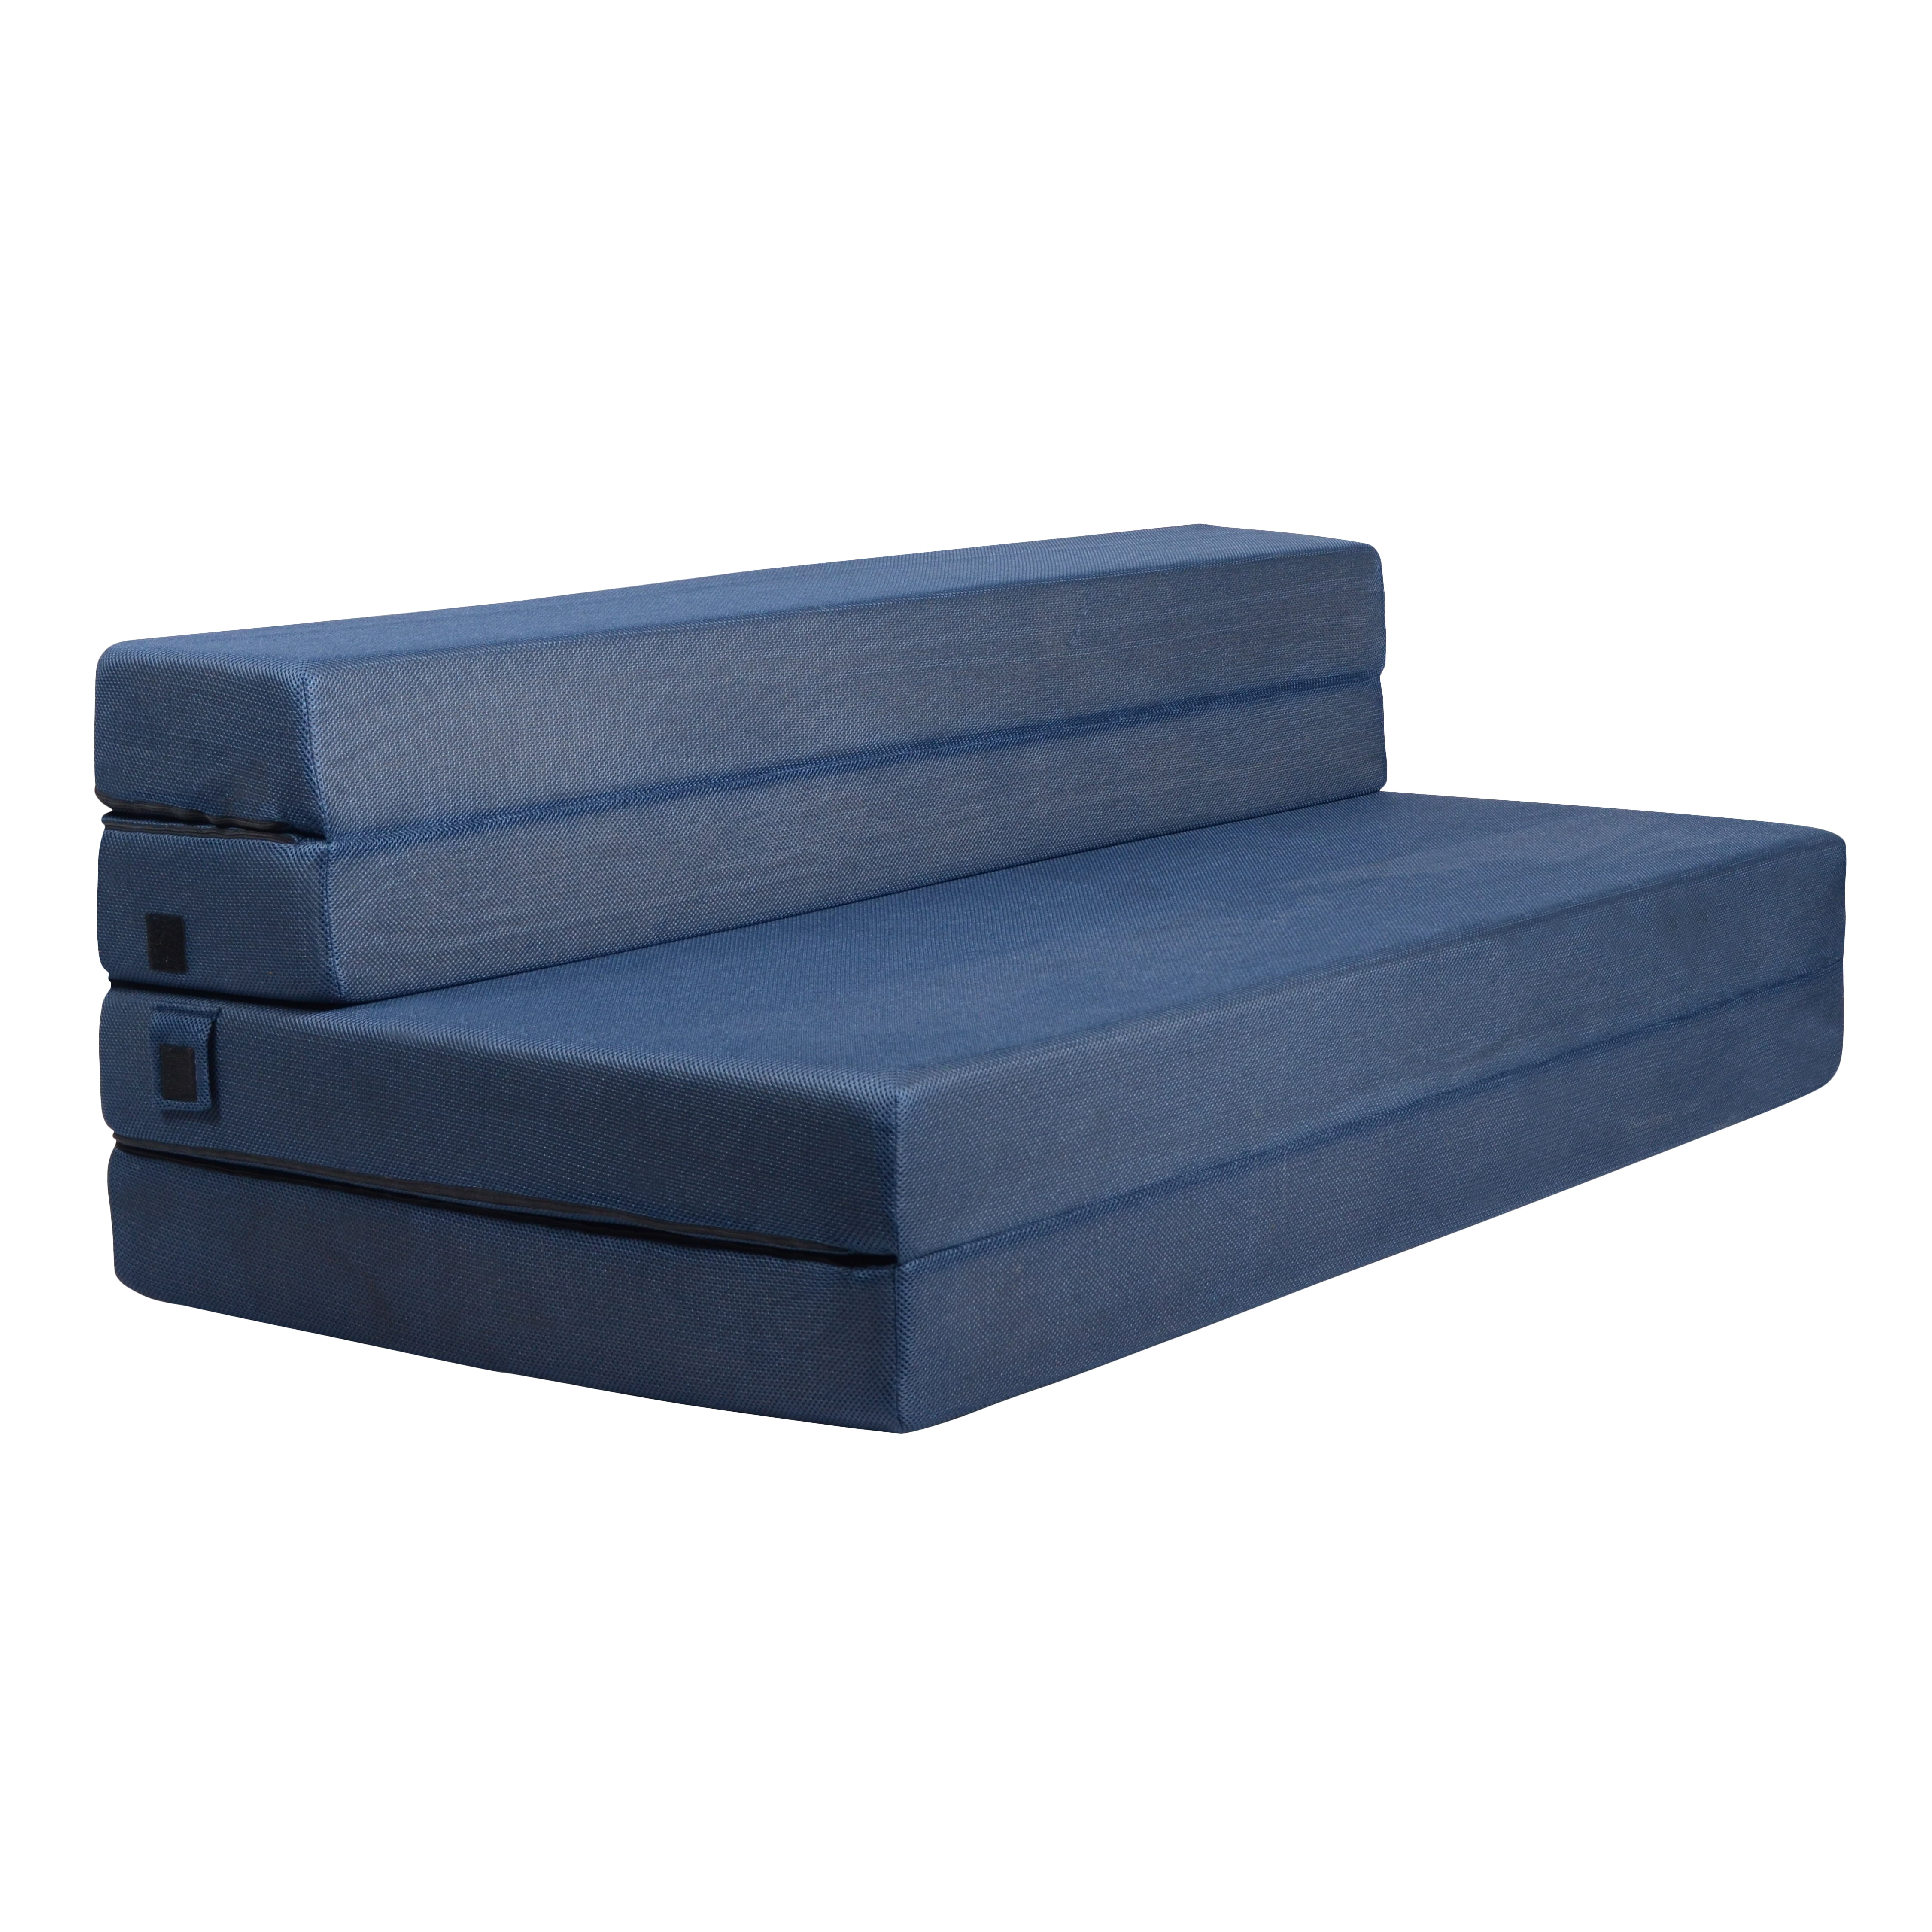 Milliard Tri Fold Foam Folding Mattress And Sofa Bed For Guests Or Floor Mat Queen 78x58x4½ Inch